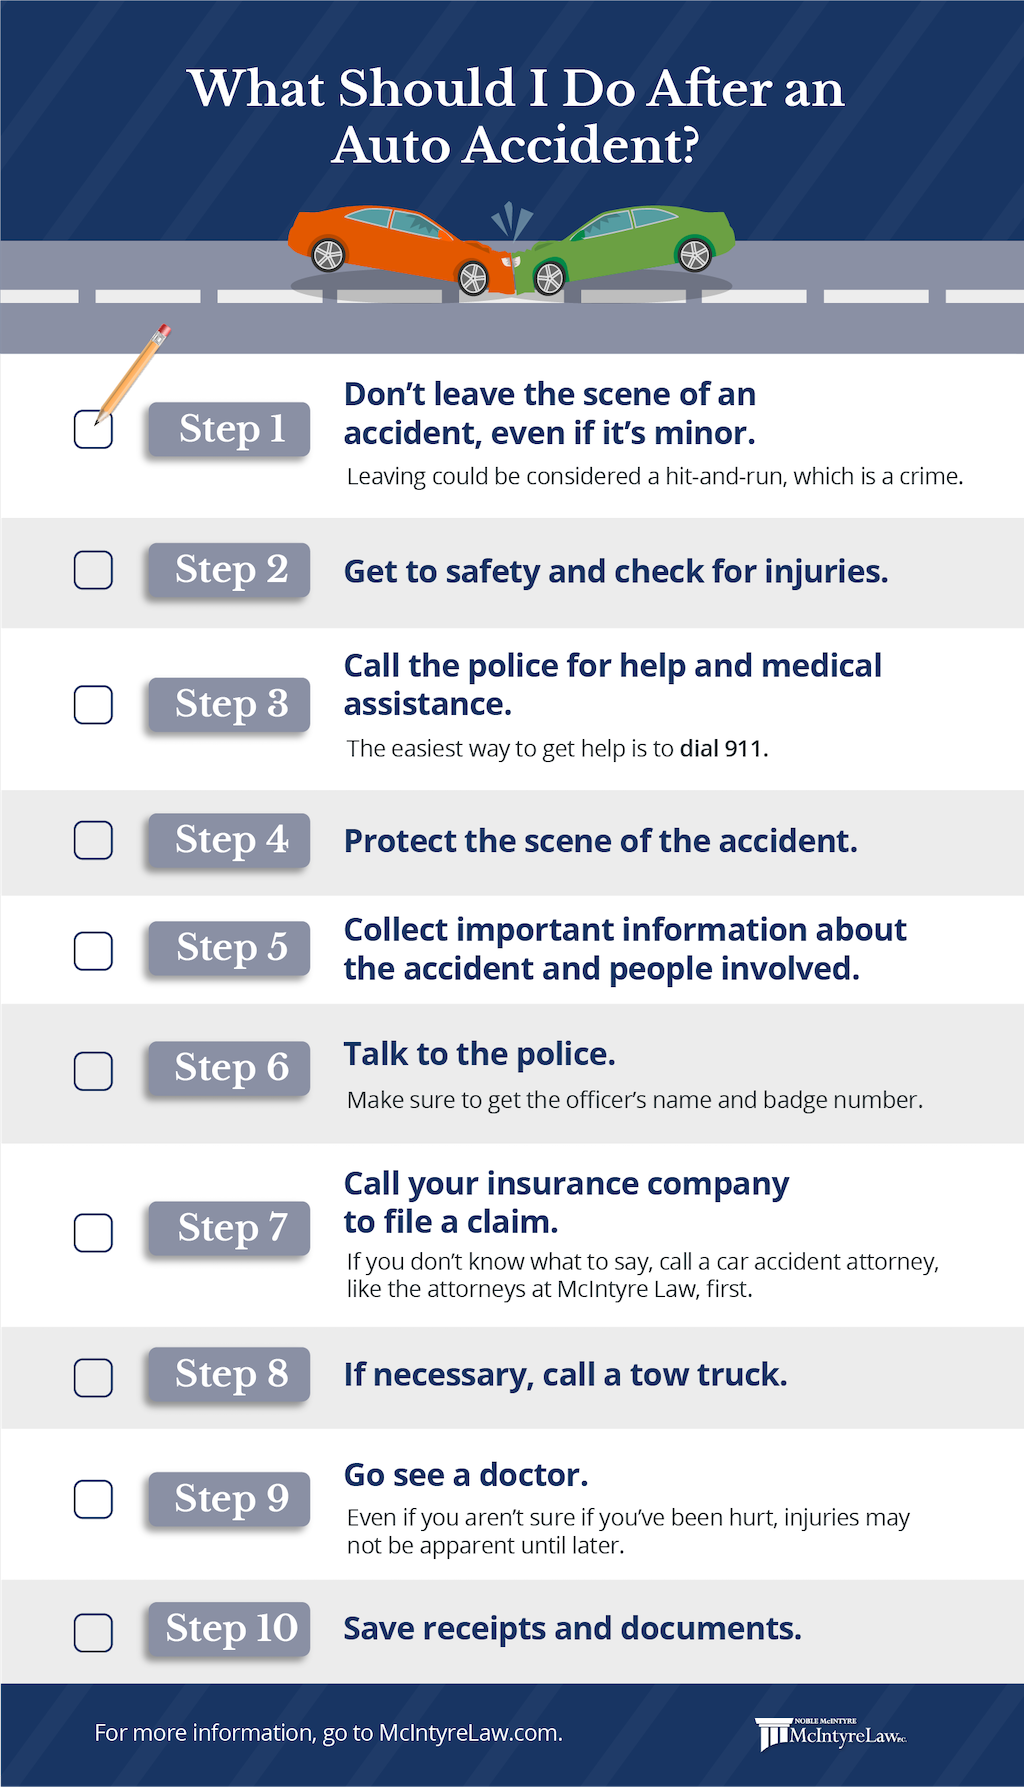 what should I do after an auto accident